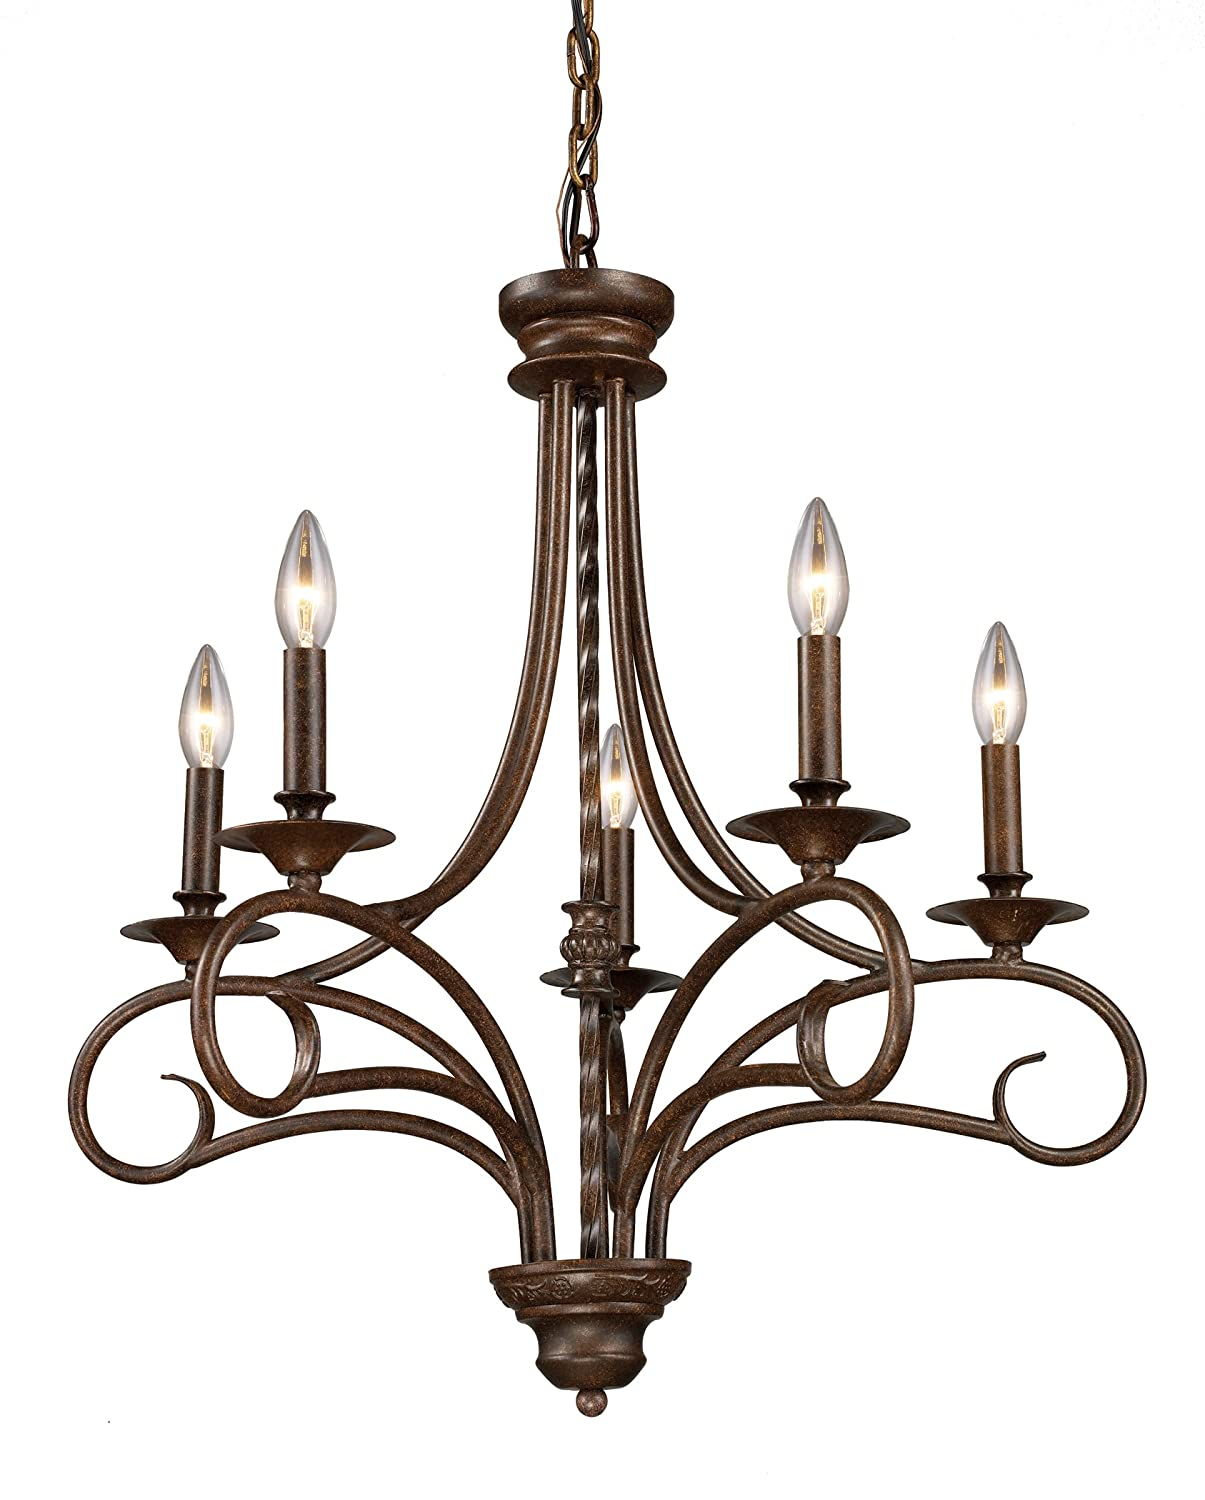 Elk 150425 gloucester 5 light chandelier in antique bronze elk 150425 gloucester 5 light chandelier in antique bronze amazon arubaitofo Images